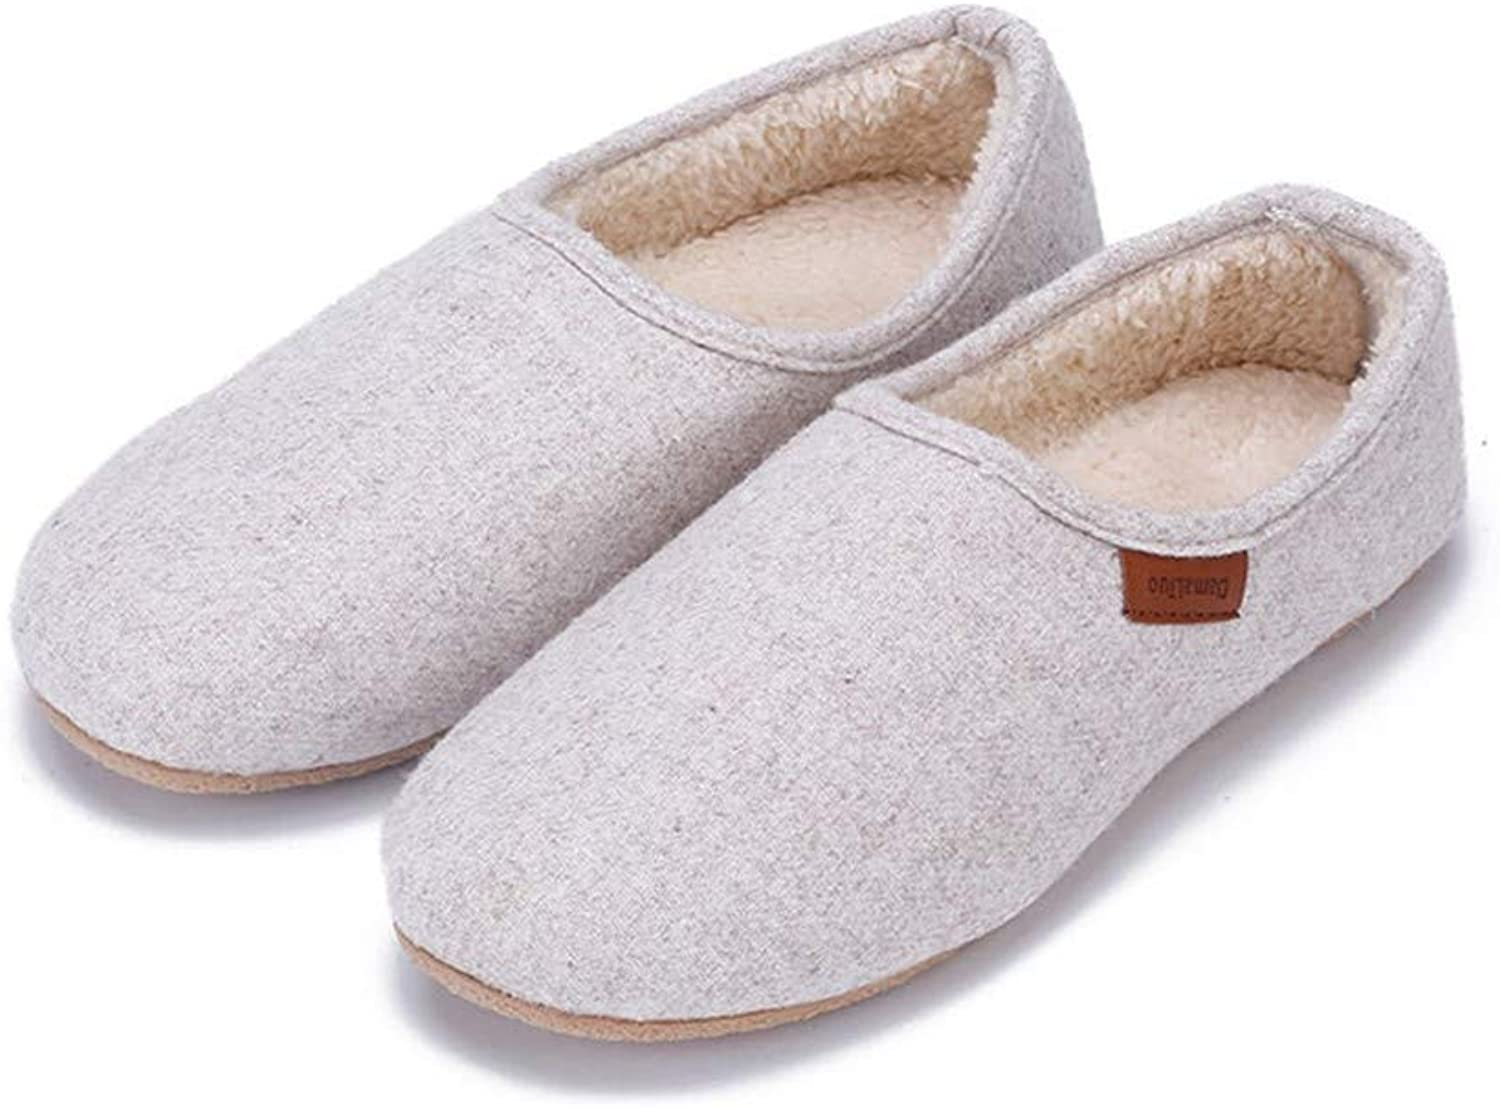 AILIUJUNBING Autumn and Winter Bag with Cotton Slippers Female Thickening feet Mute Non-Slip Waterproof shoes Home shoes Women Indoor Slippers Cozy Pretty